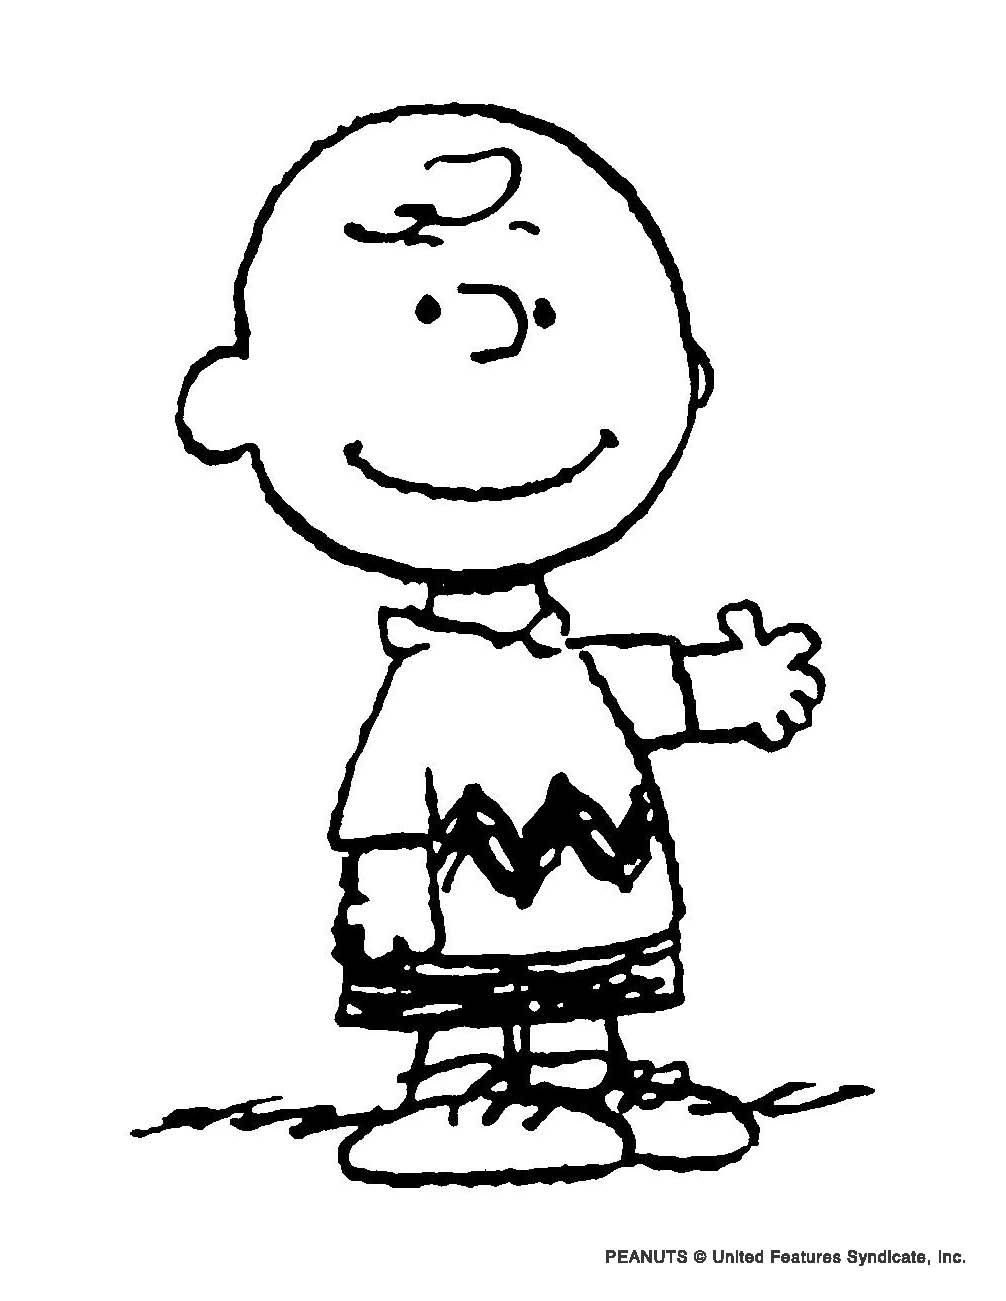 Coloring pictures charlie brown characters - Charlie Brown Coloring Pages Recherche Google